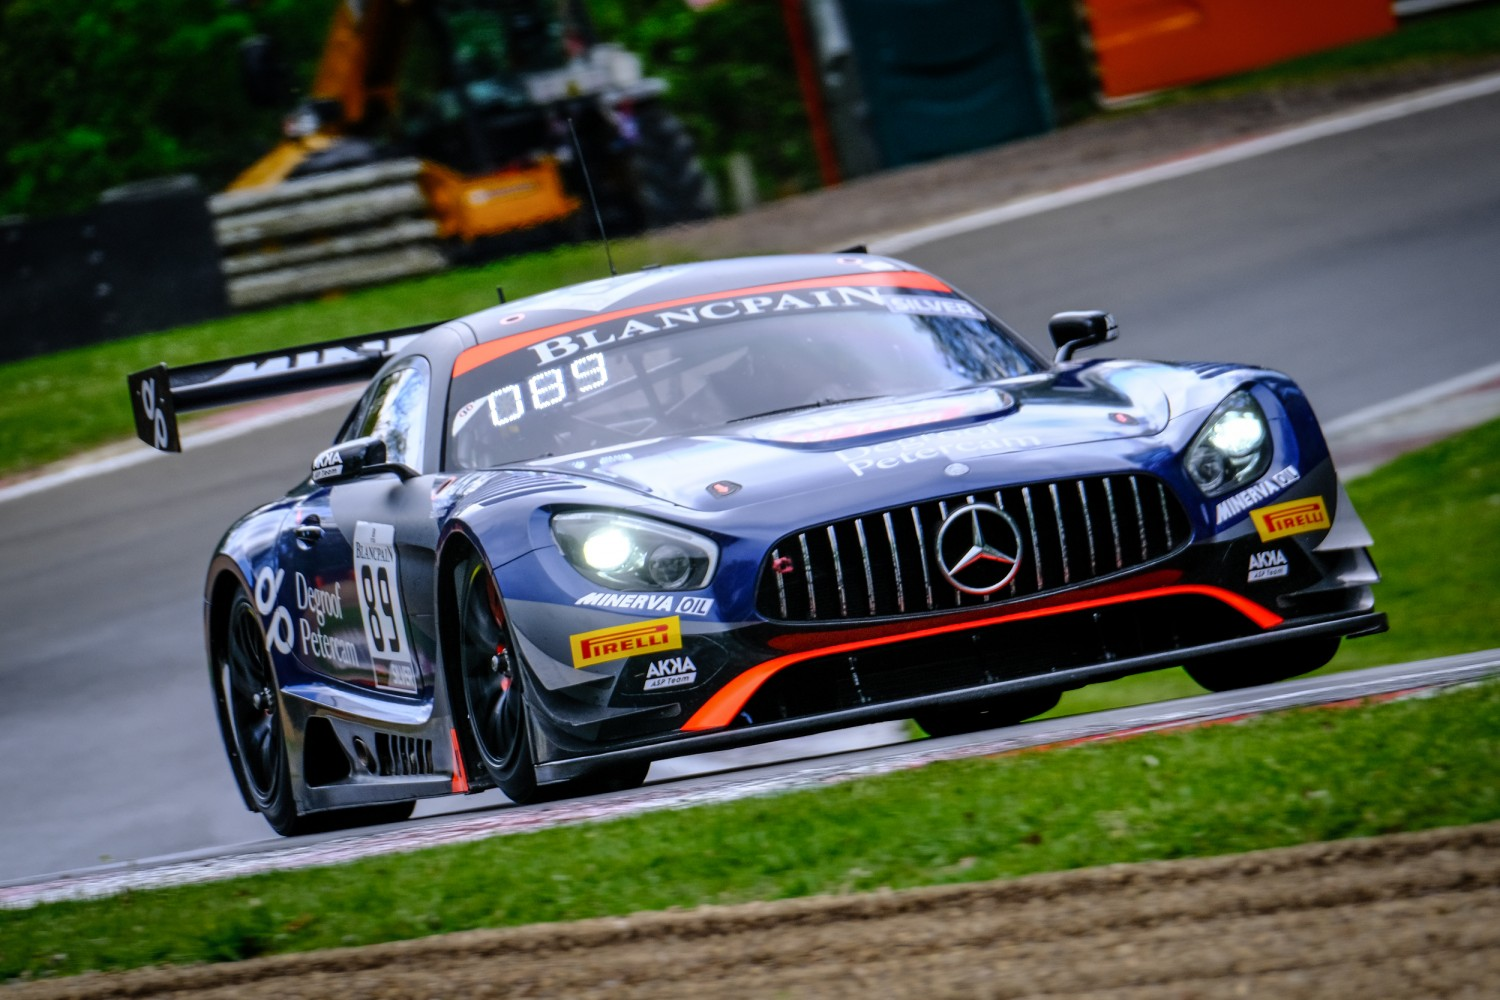 AKKA ASP takes sensational opening Brands Hatch victory with #89 Mercedes-AMG